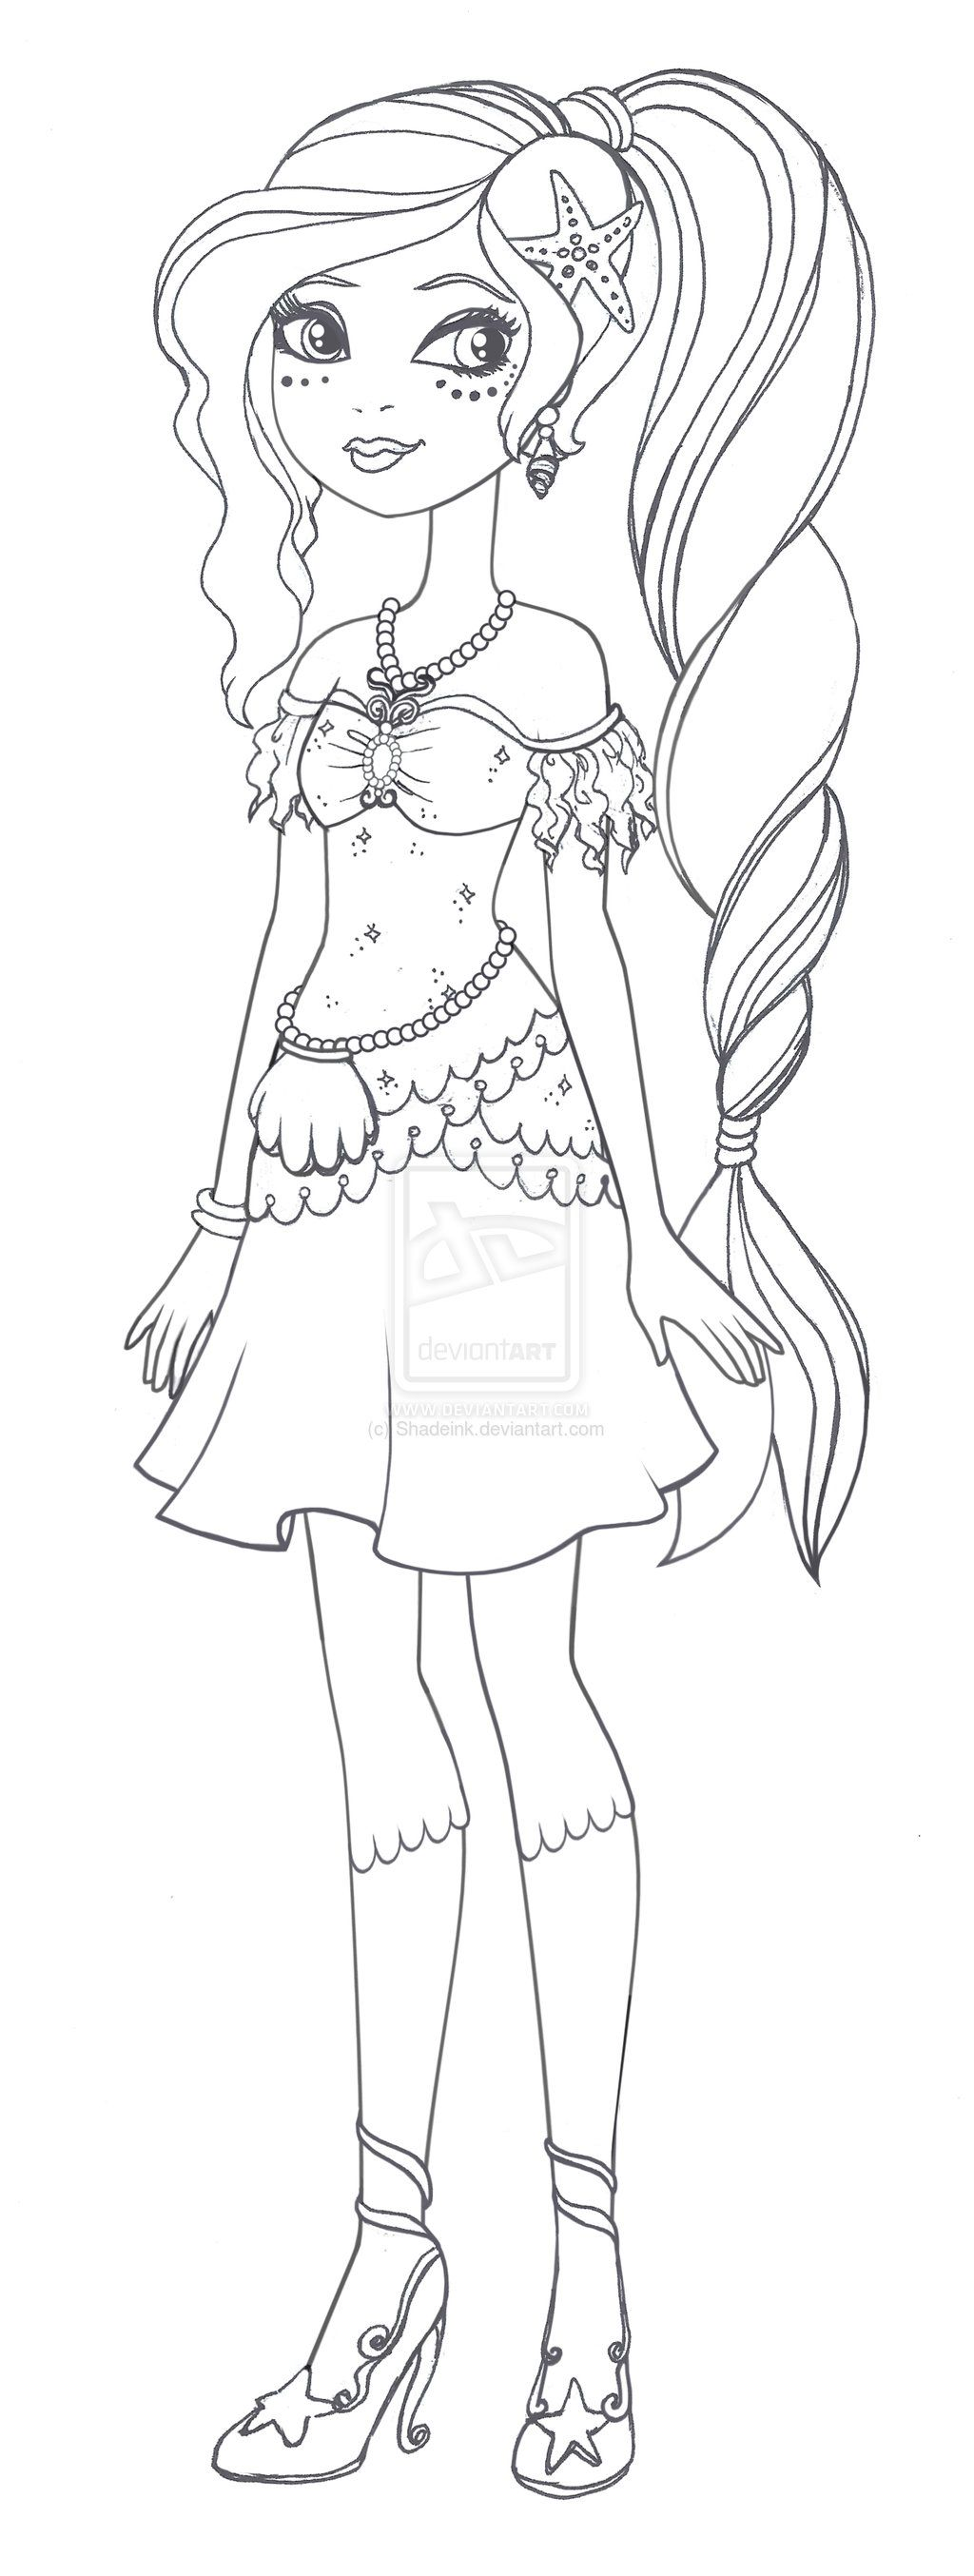 Coloring pages for ever after high - Ever After High Apple White Coloring Pages Ever After High Nariel Miriam